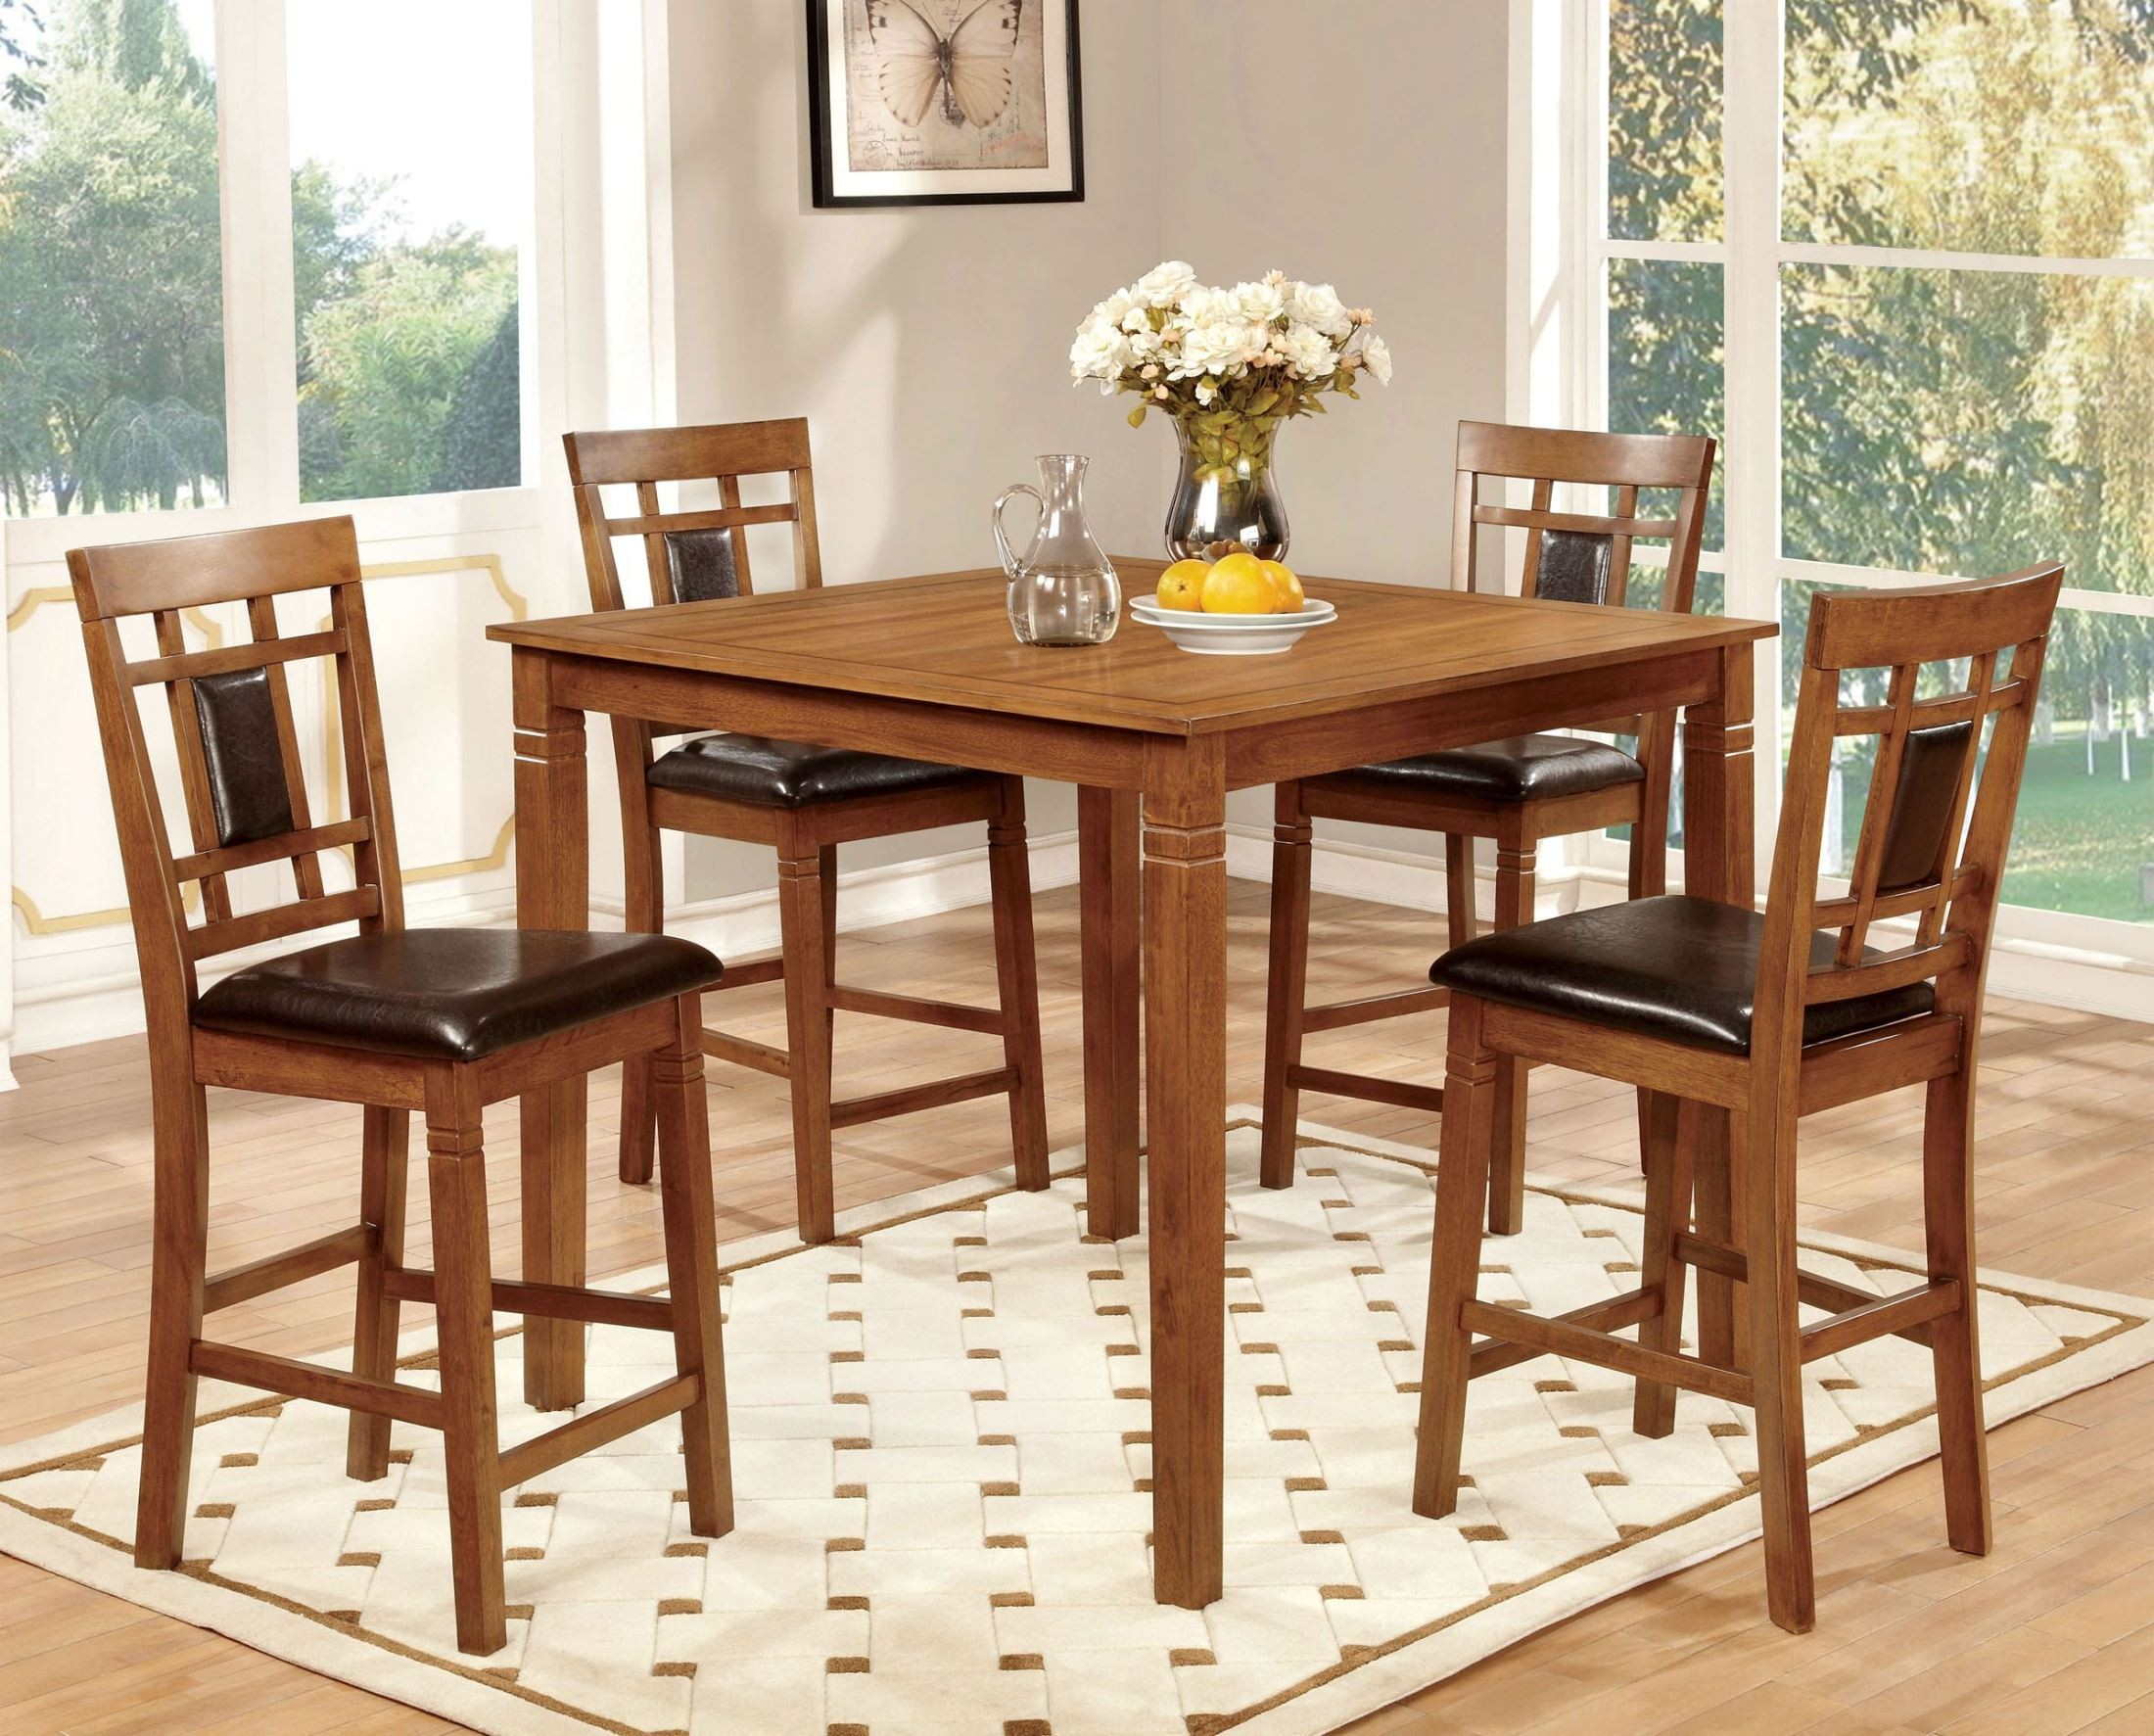 Freeman II Light Oak 5 Piece Counter Height Table Set From